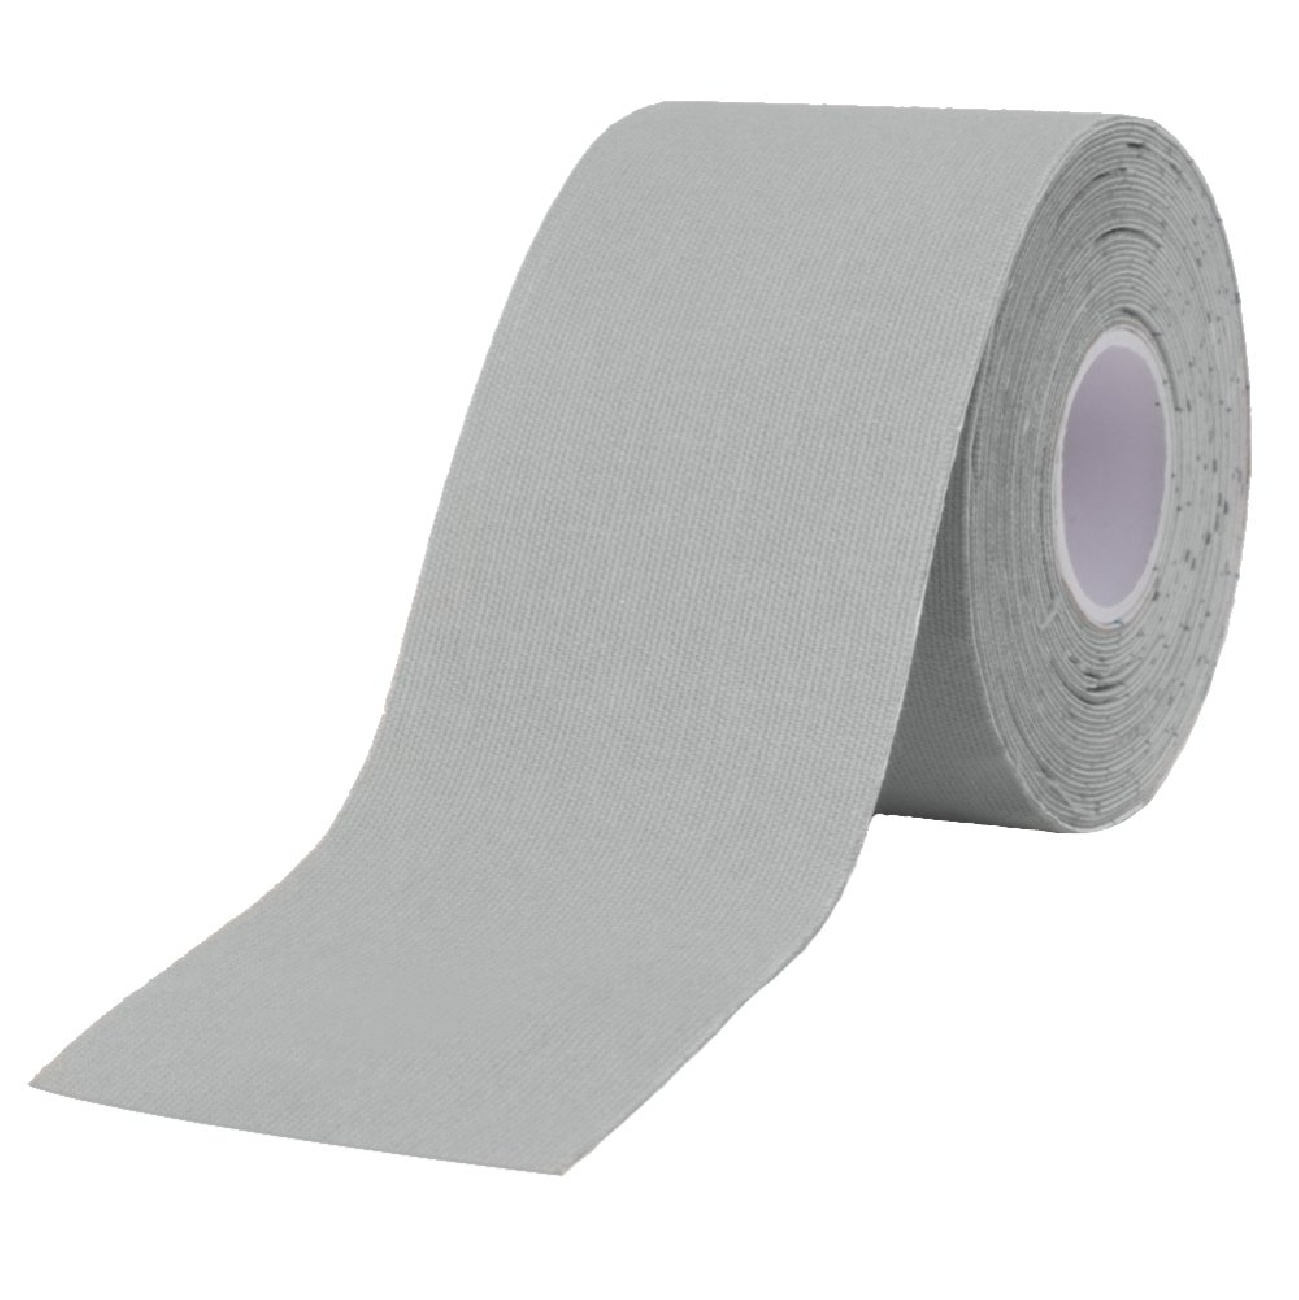 StrengthTape Uncut Single Rolls - Silver Grey